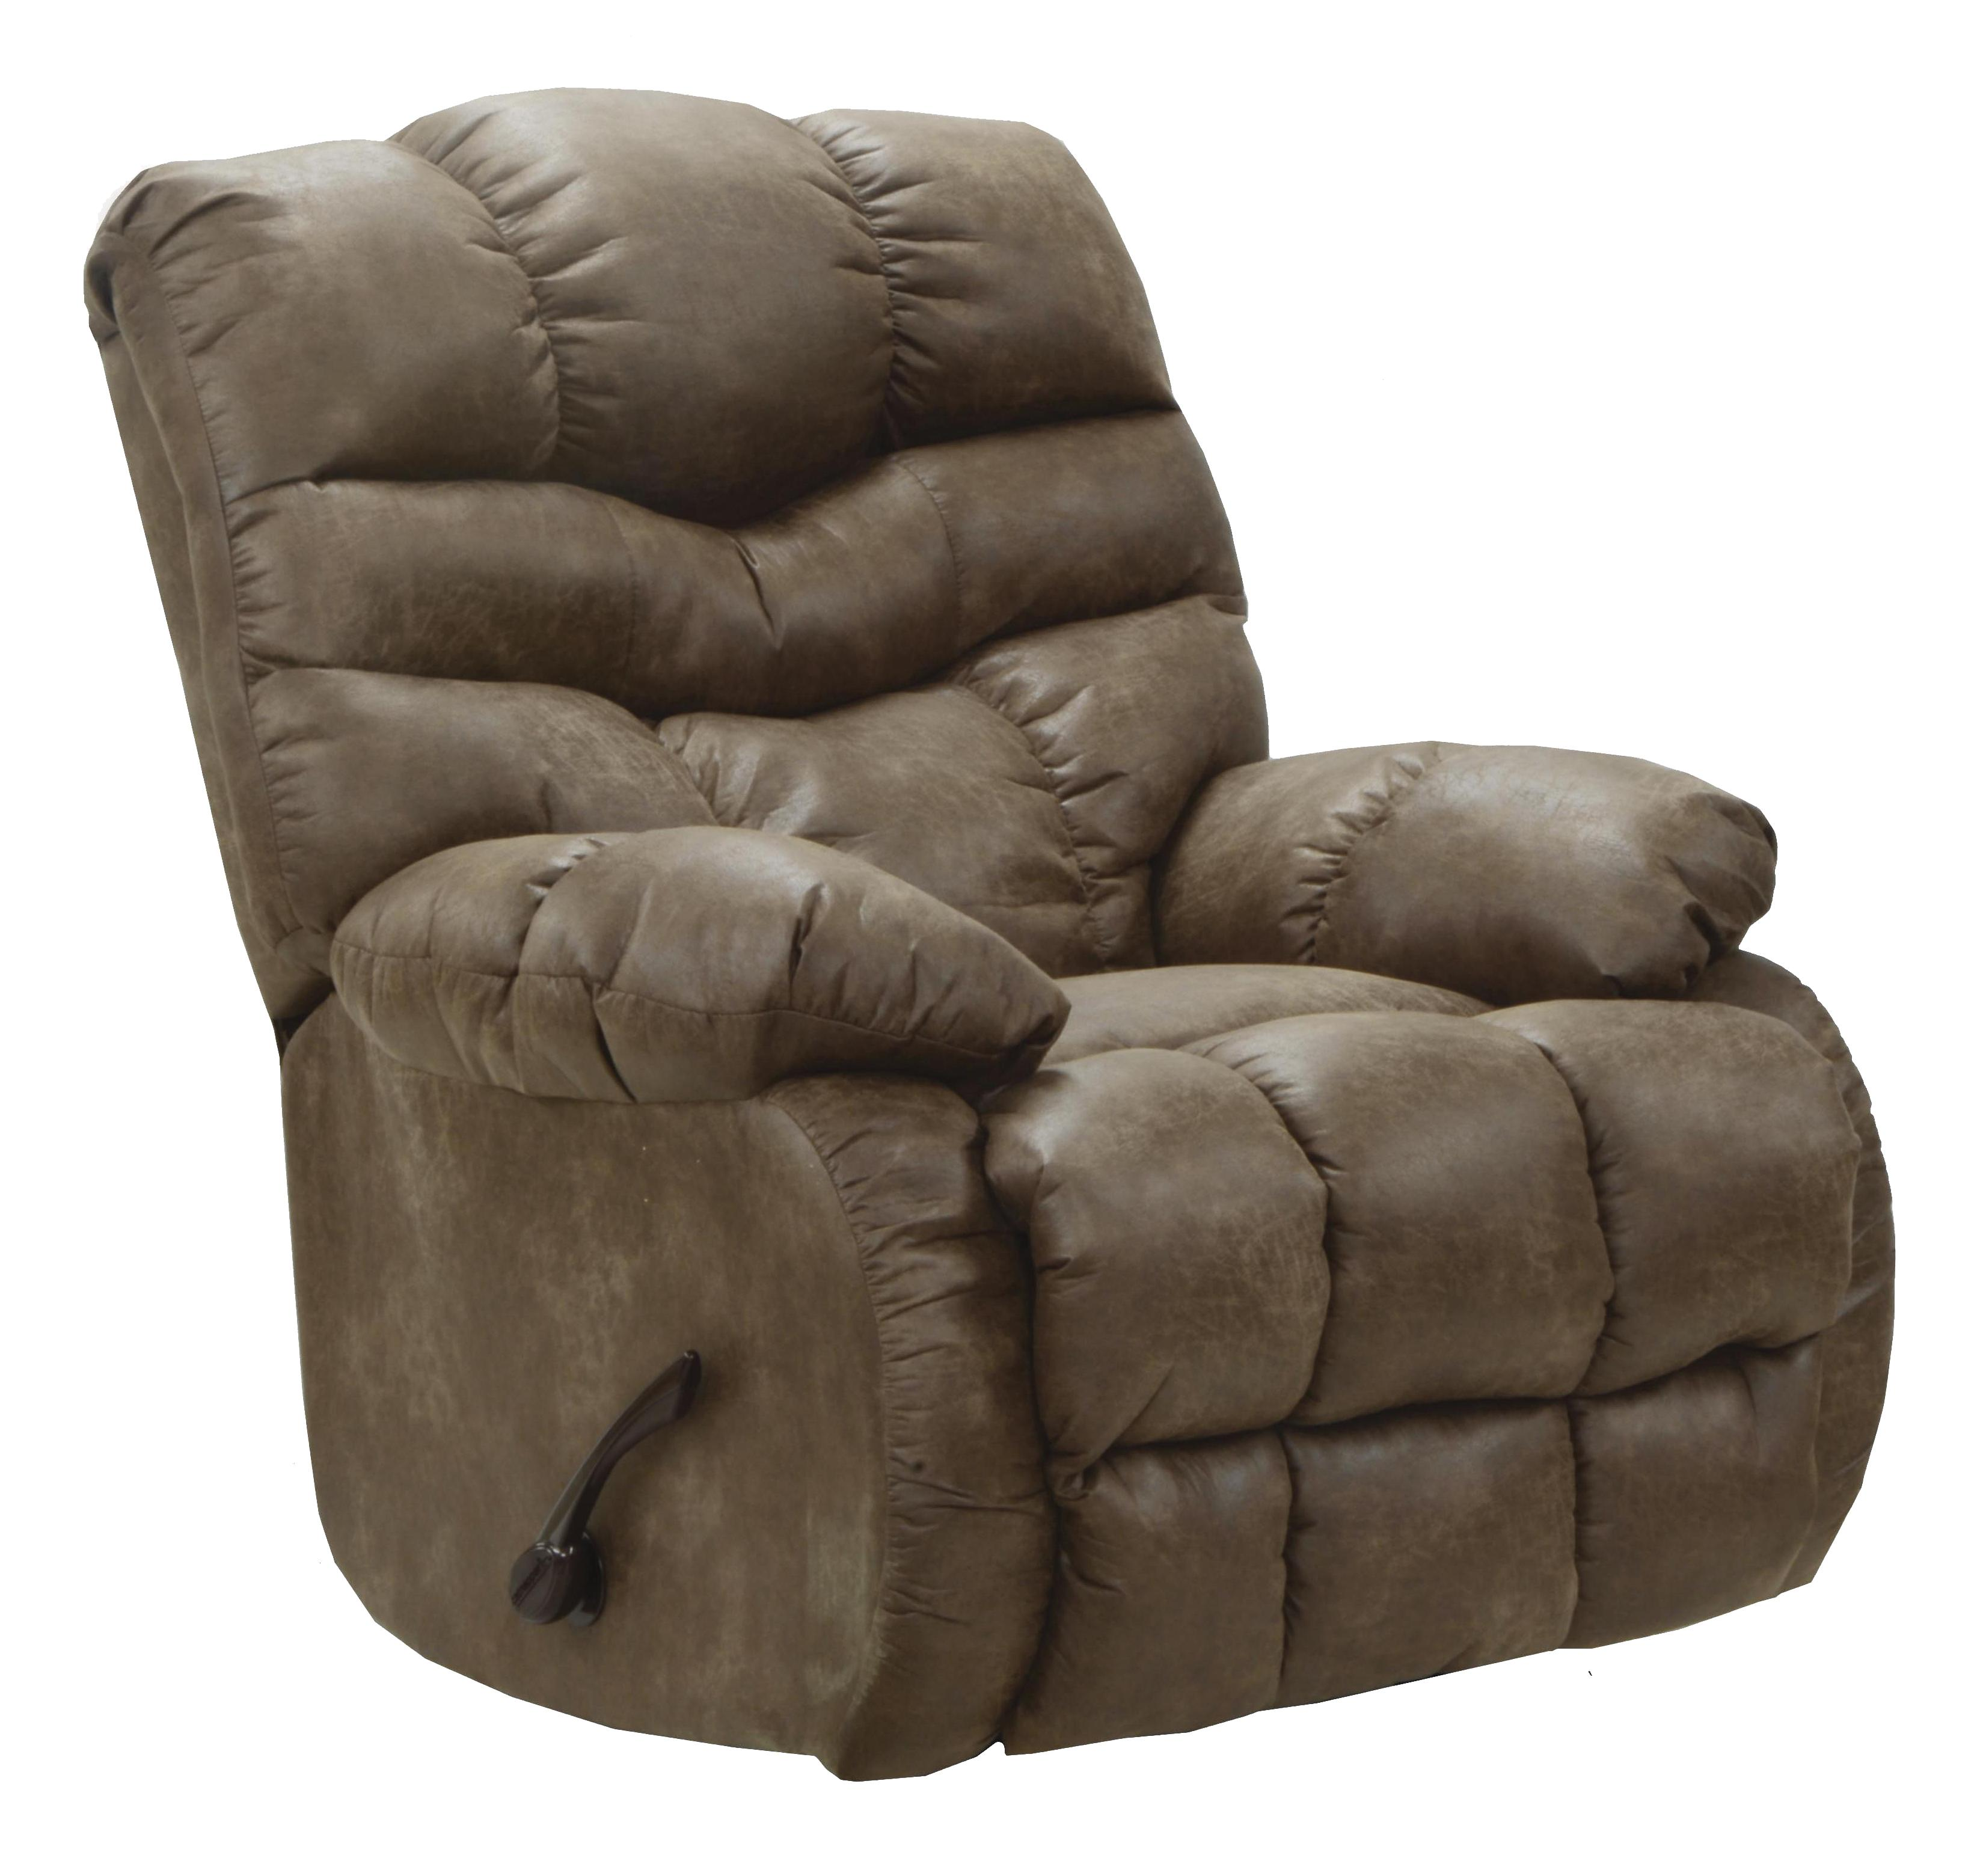 rocker and recliner chair office without wheels uk delivery estimates northeast factory direct cleveland eastlake berman